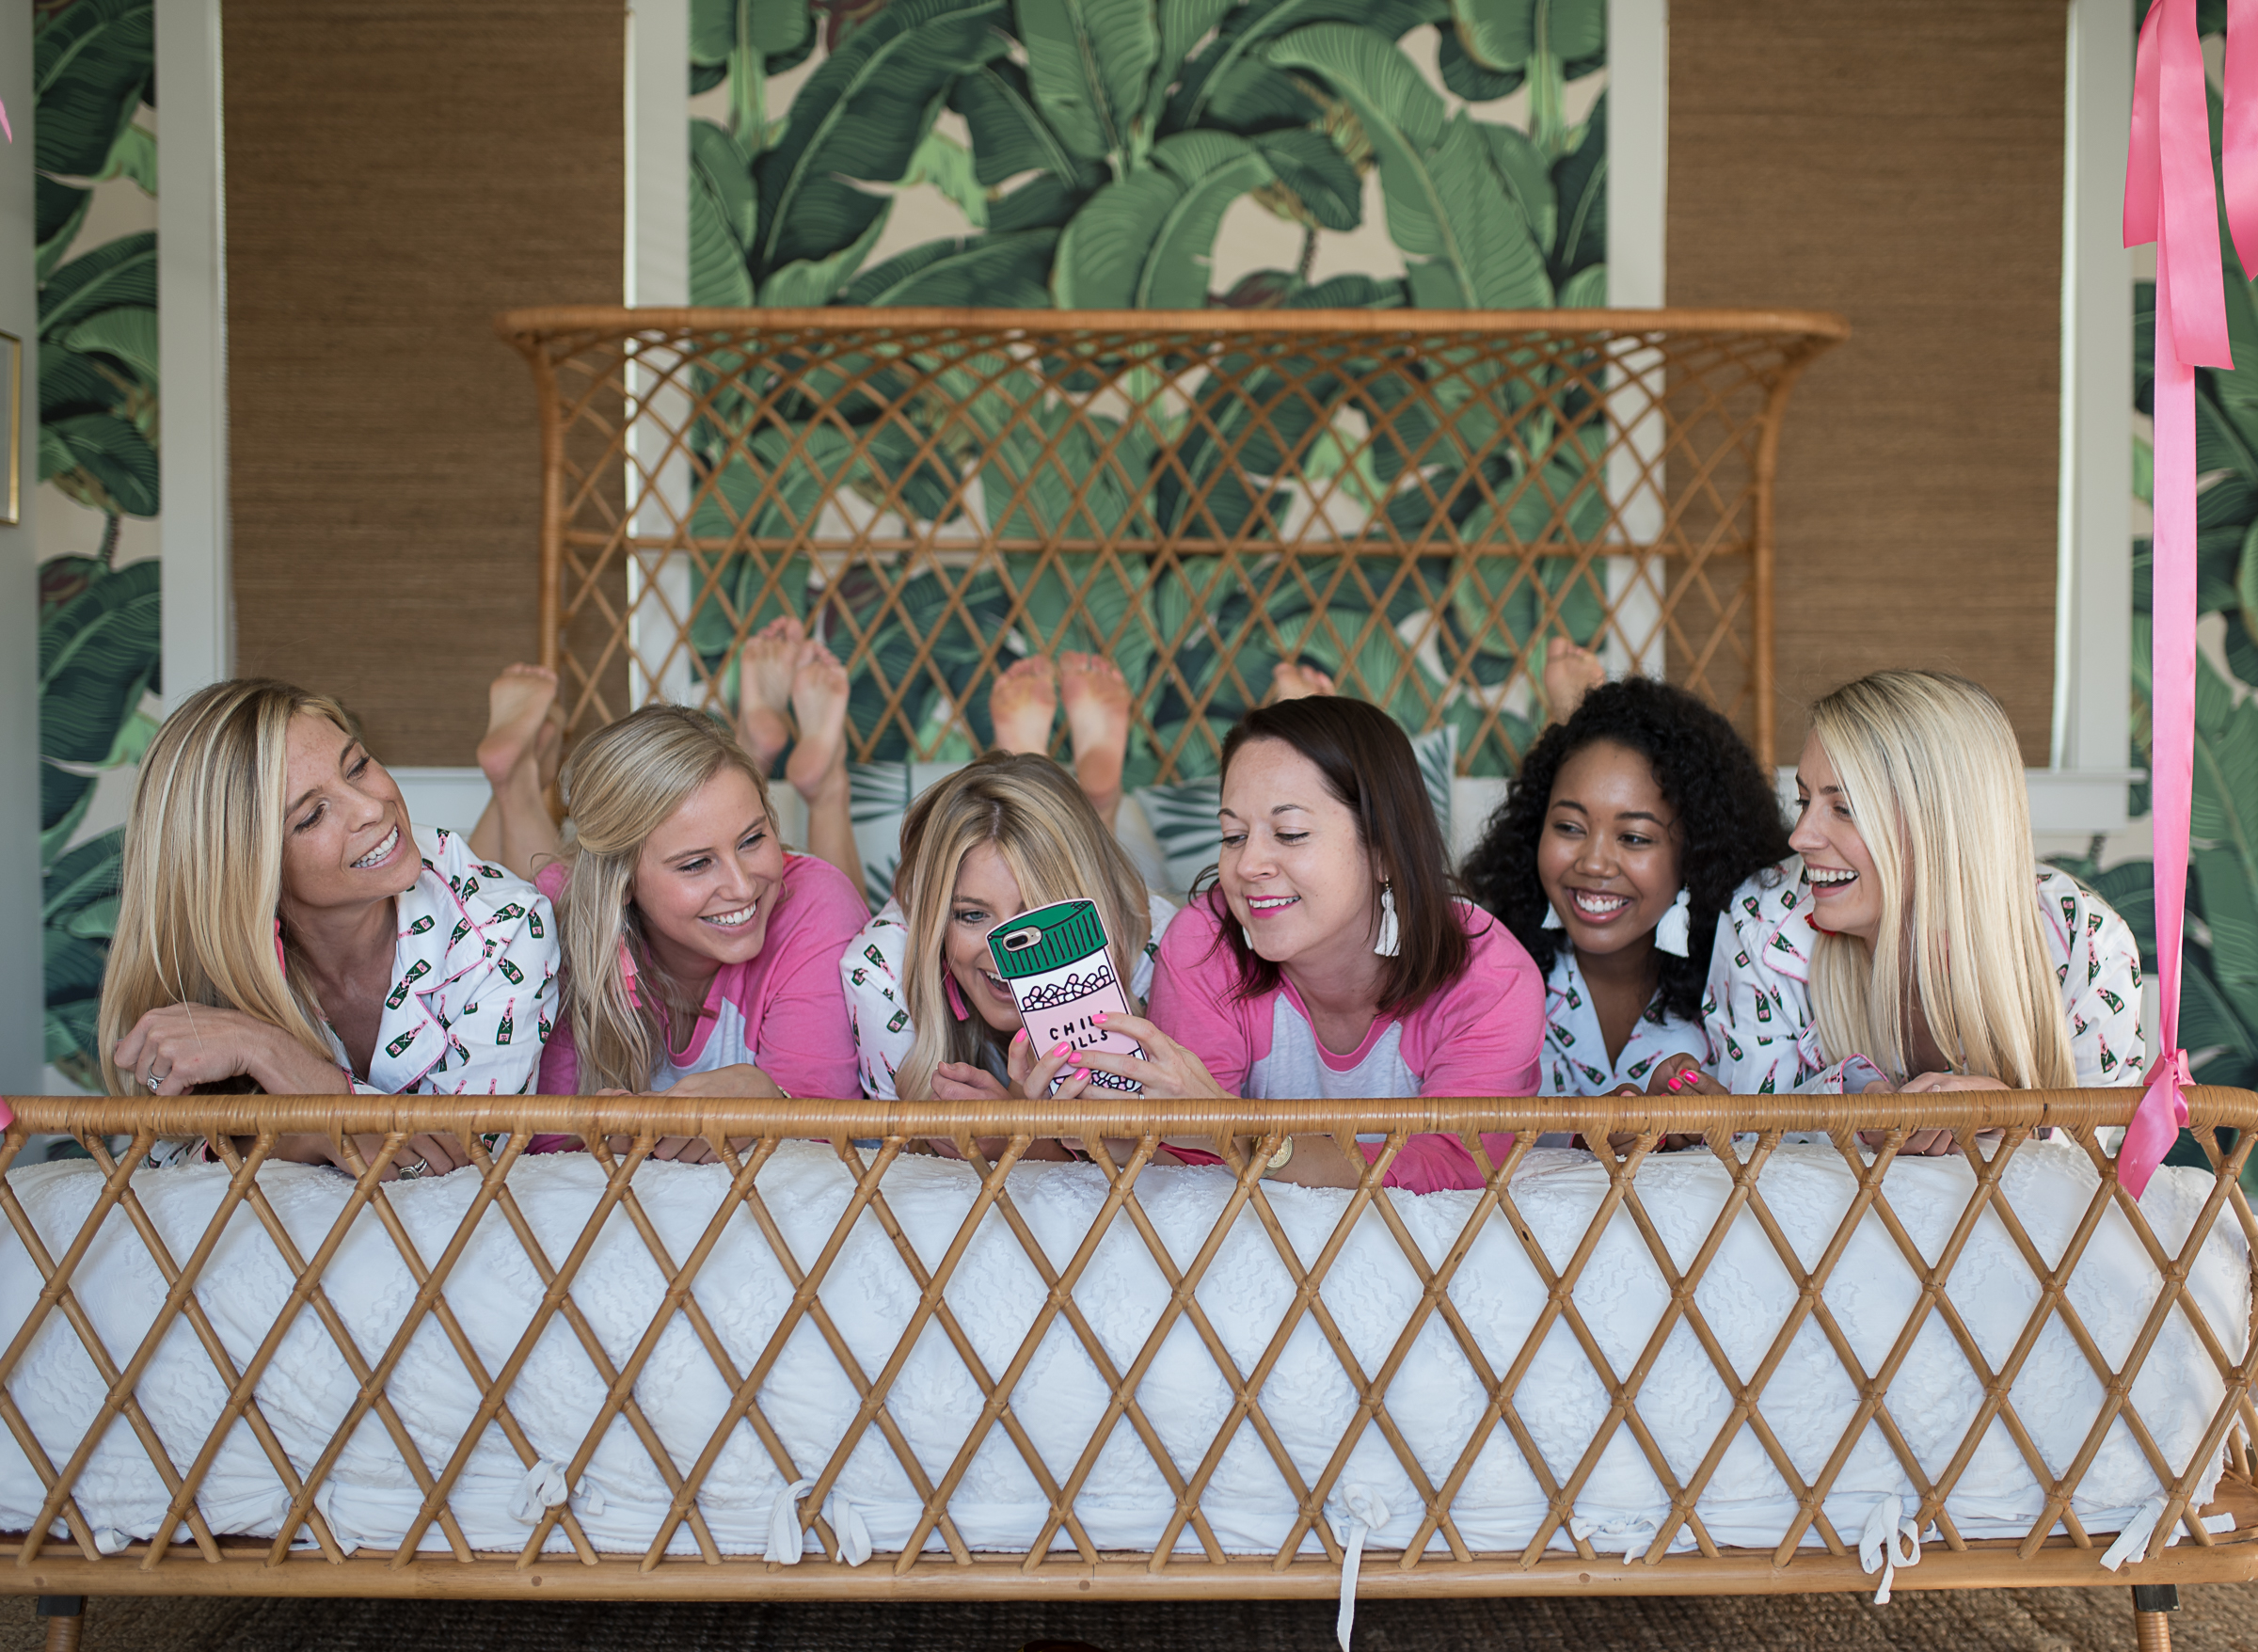 Girls slumber party with green palm leaf wallpaper  //  designed by Cayleigh Hopkins of The Petal Report  //  on A Lowcountry Wedding Magazine